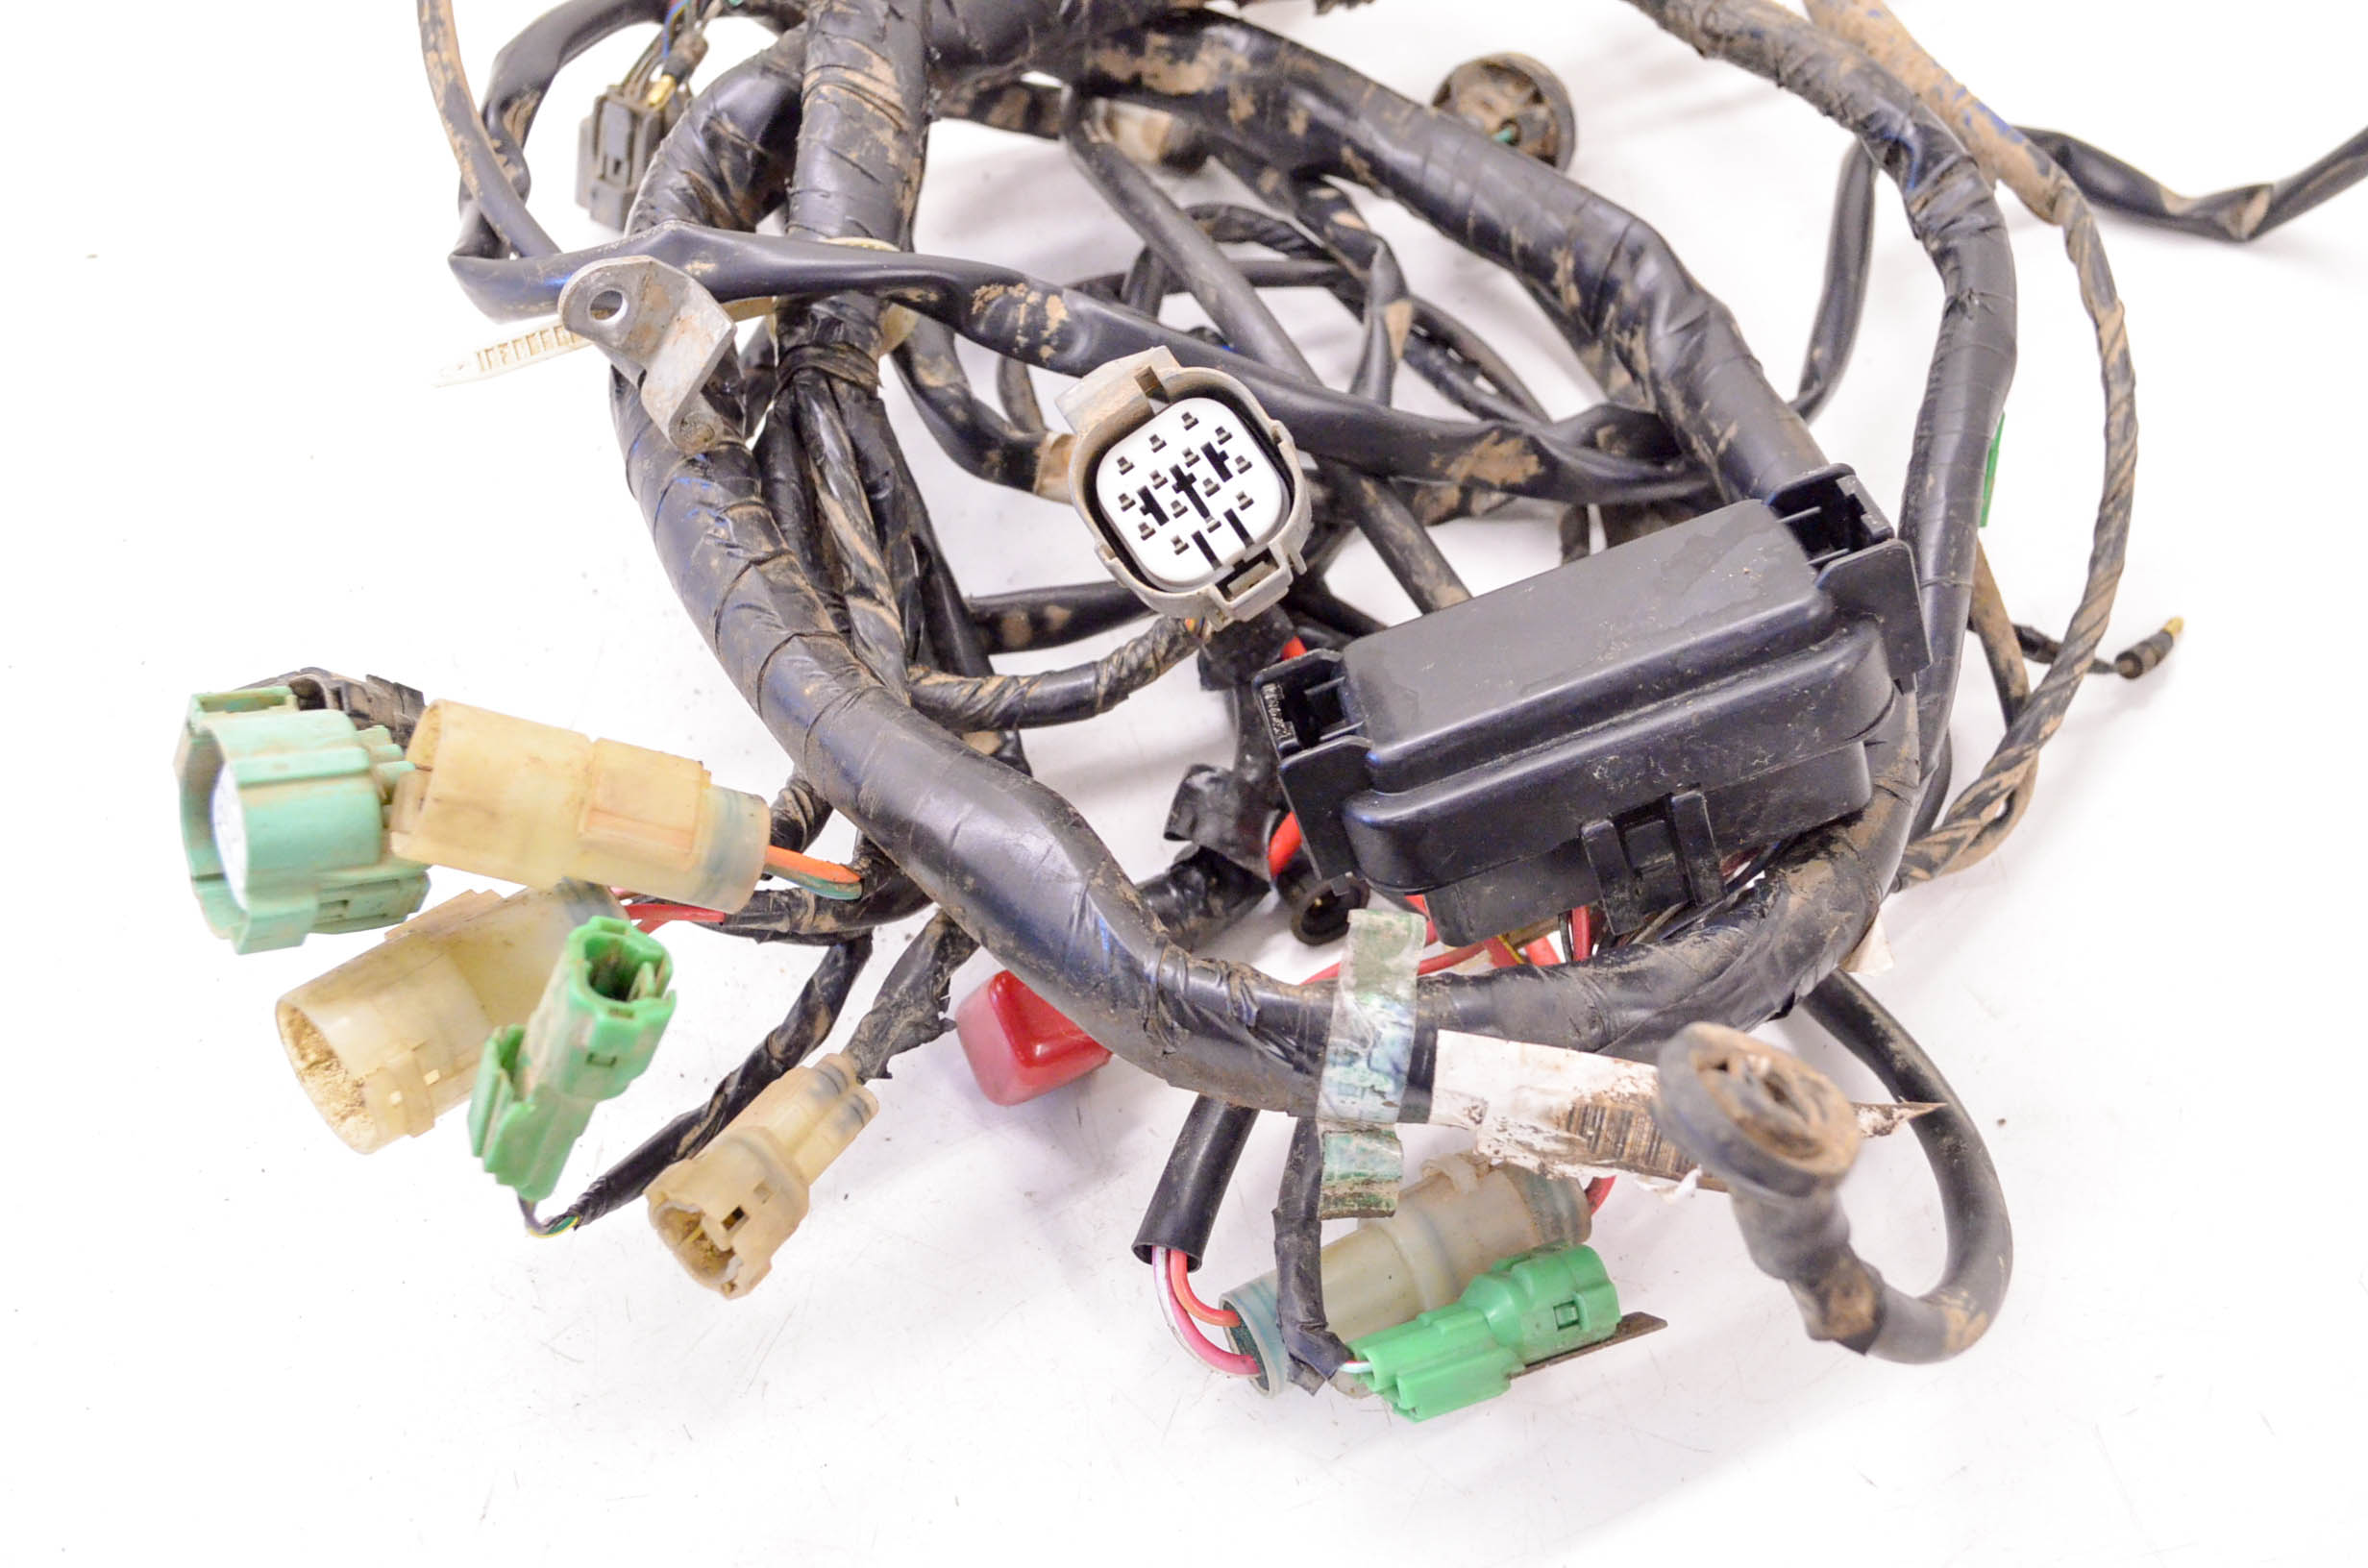 05 Honda Rancher 350 2x4 Es Wire Harness Electrical Wiring